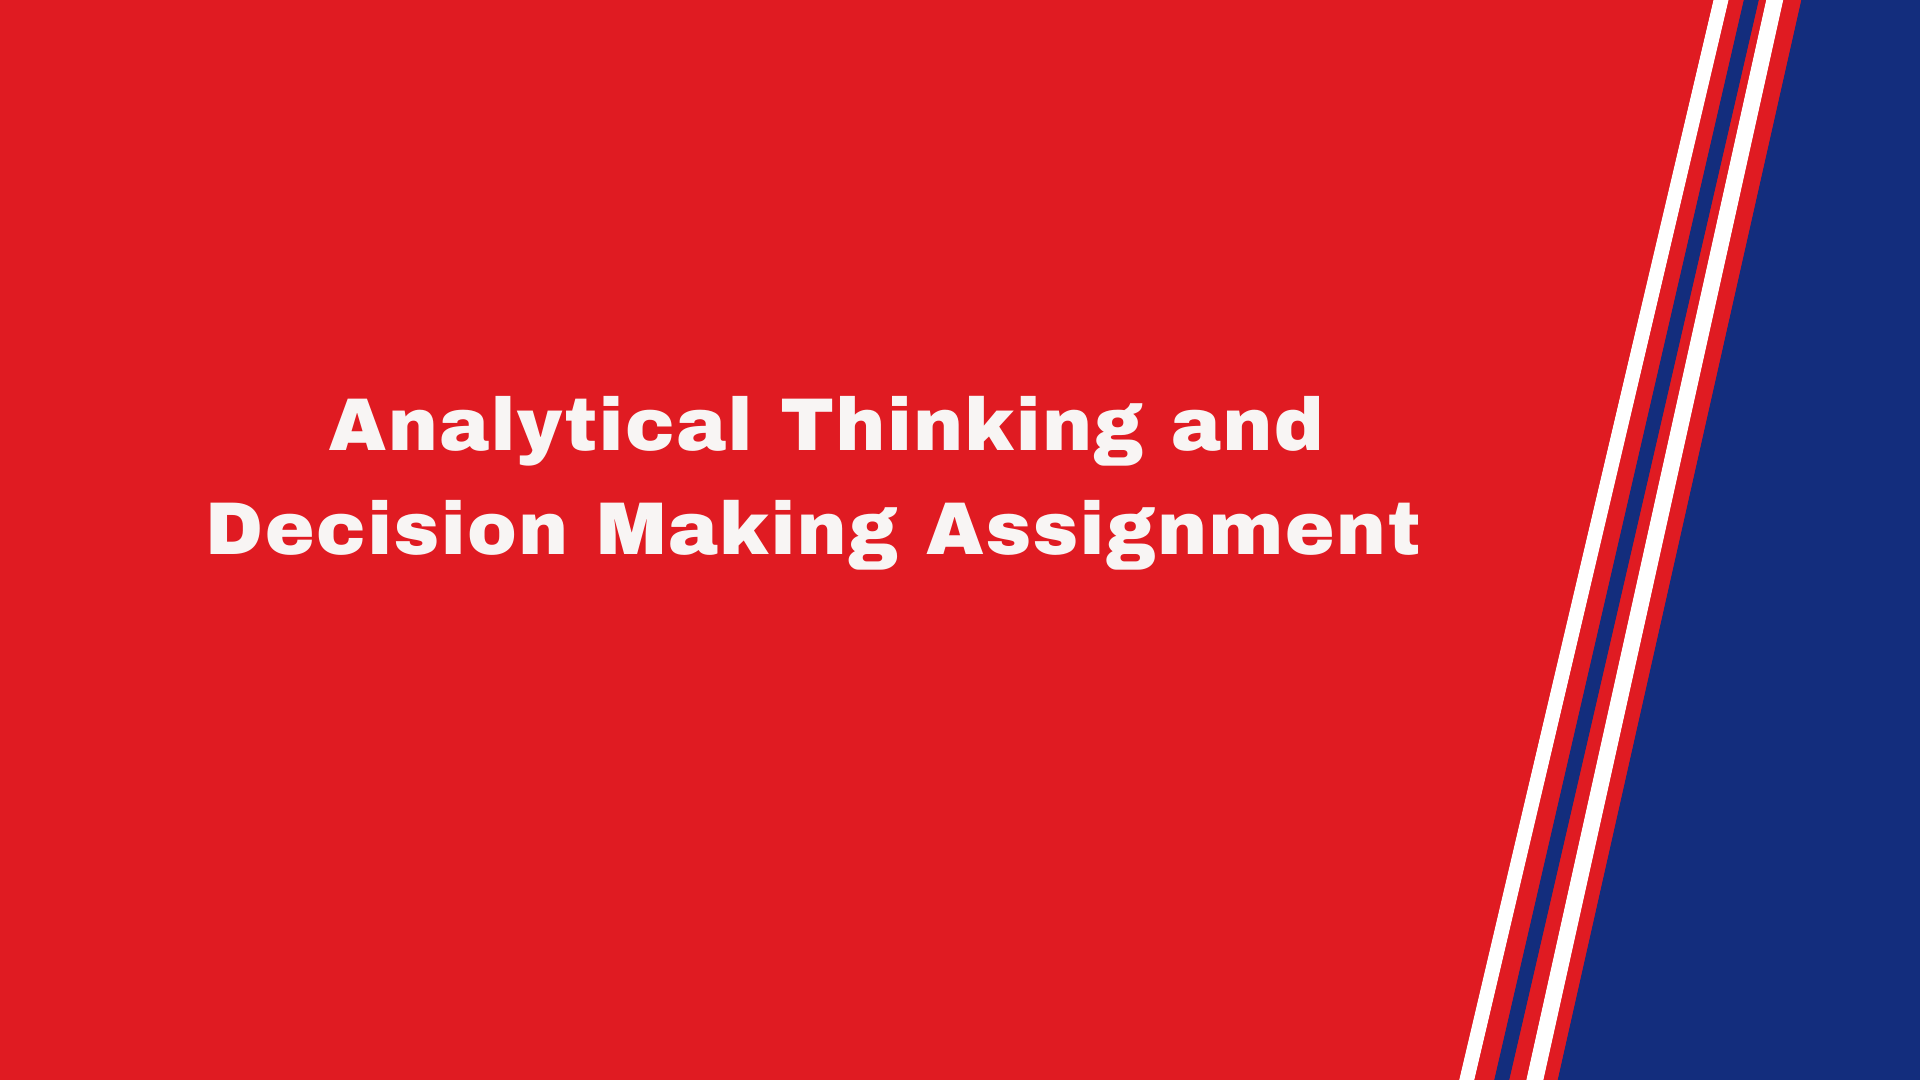 Analytical Thinking and Decision Making Assignment